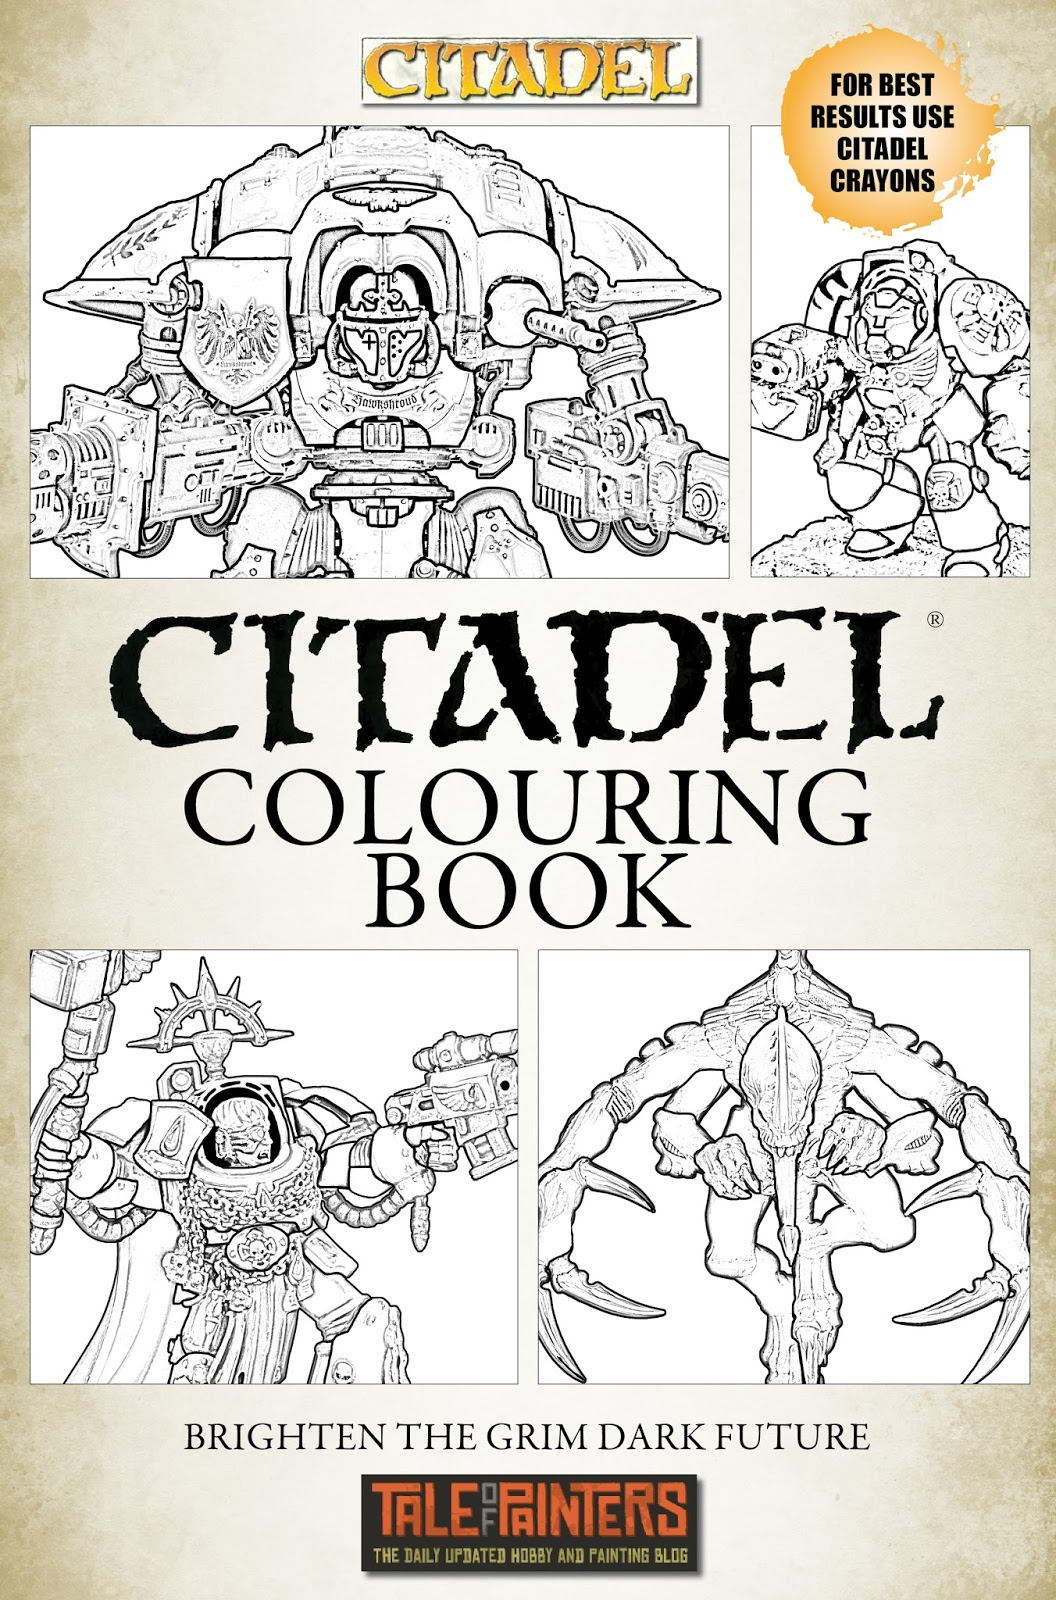 The coloring book project 2nd edition - Rumour Citadel Colouring Book Leaked Cover